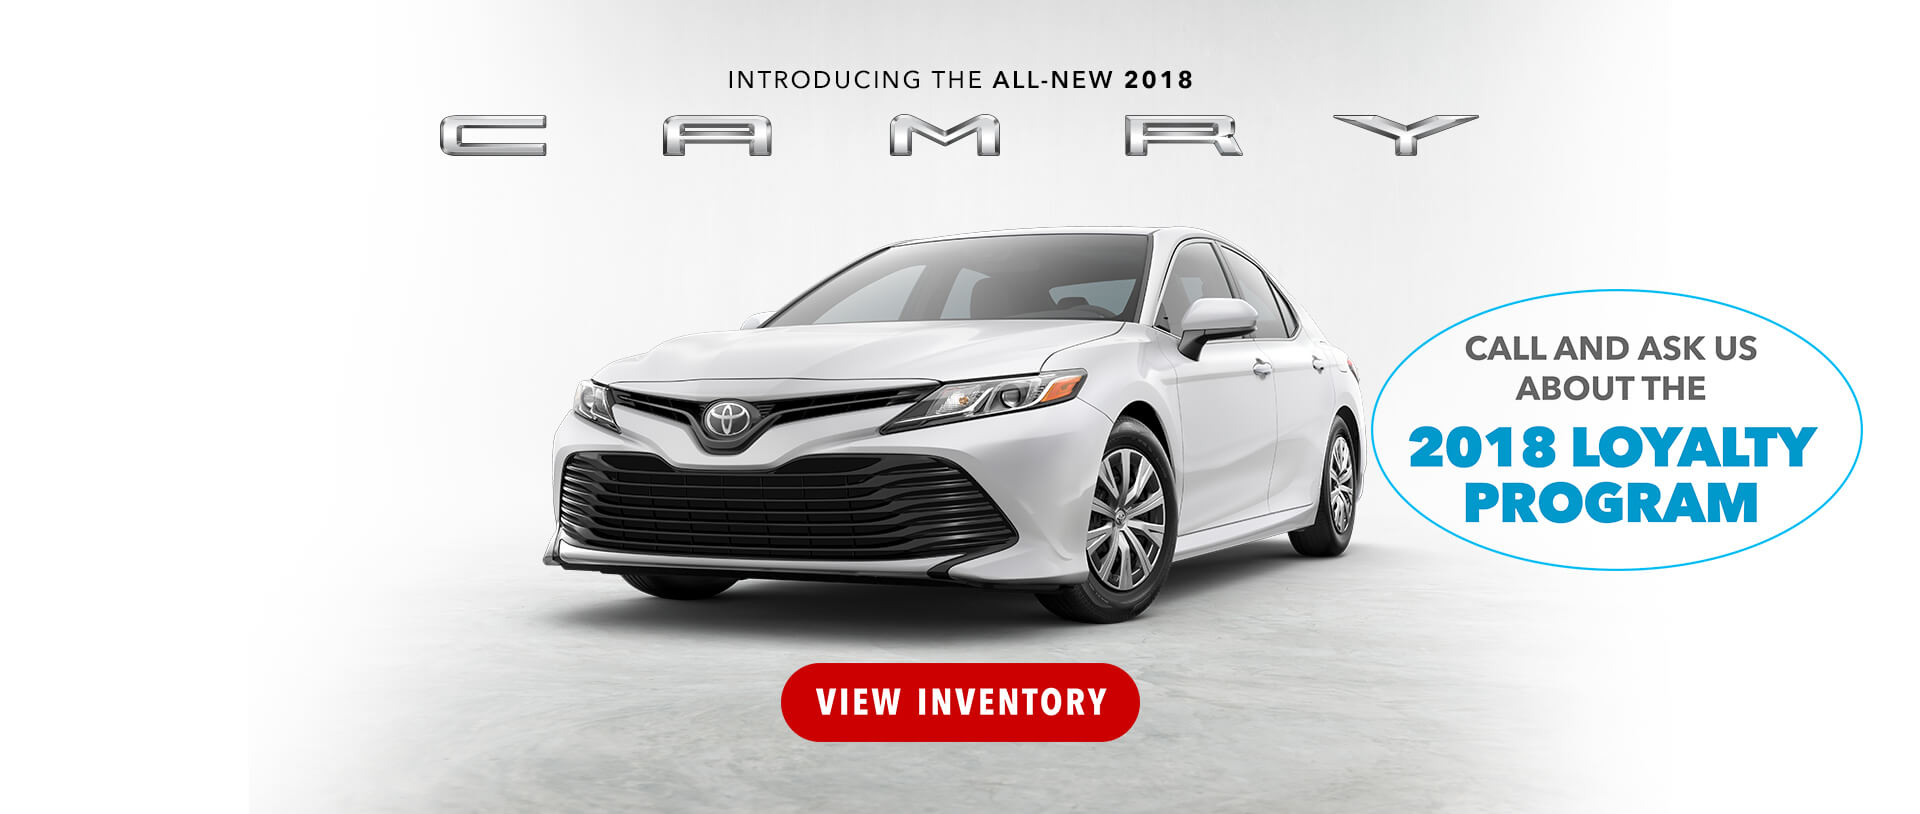 2018 Camry Loyalty Program